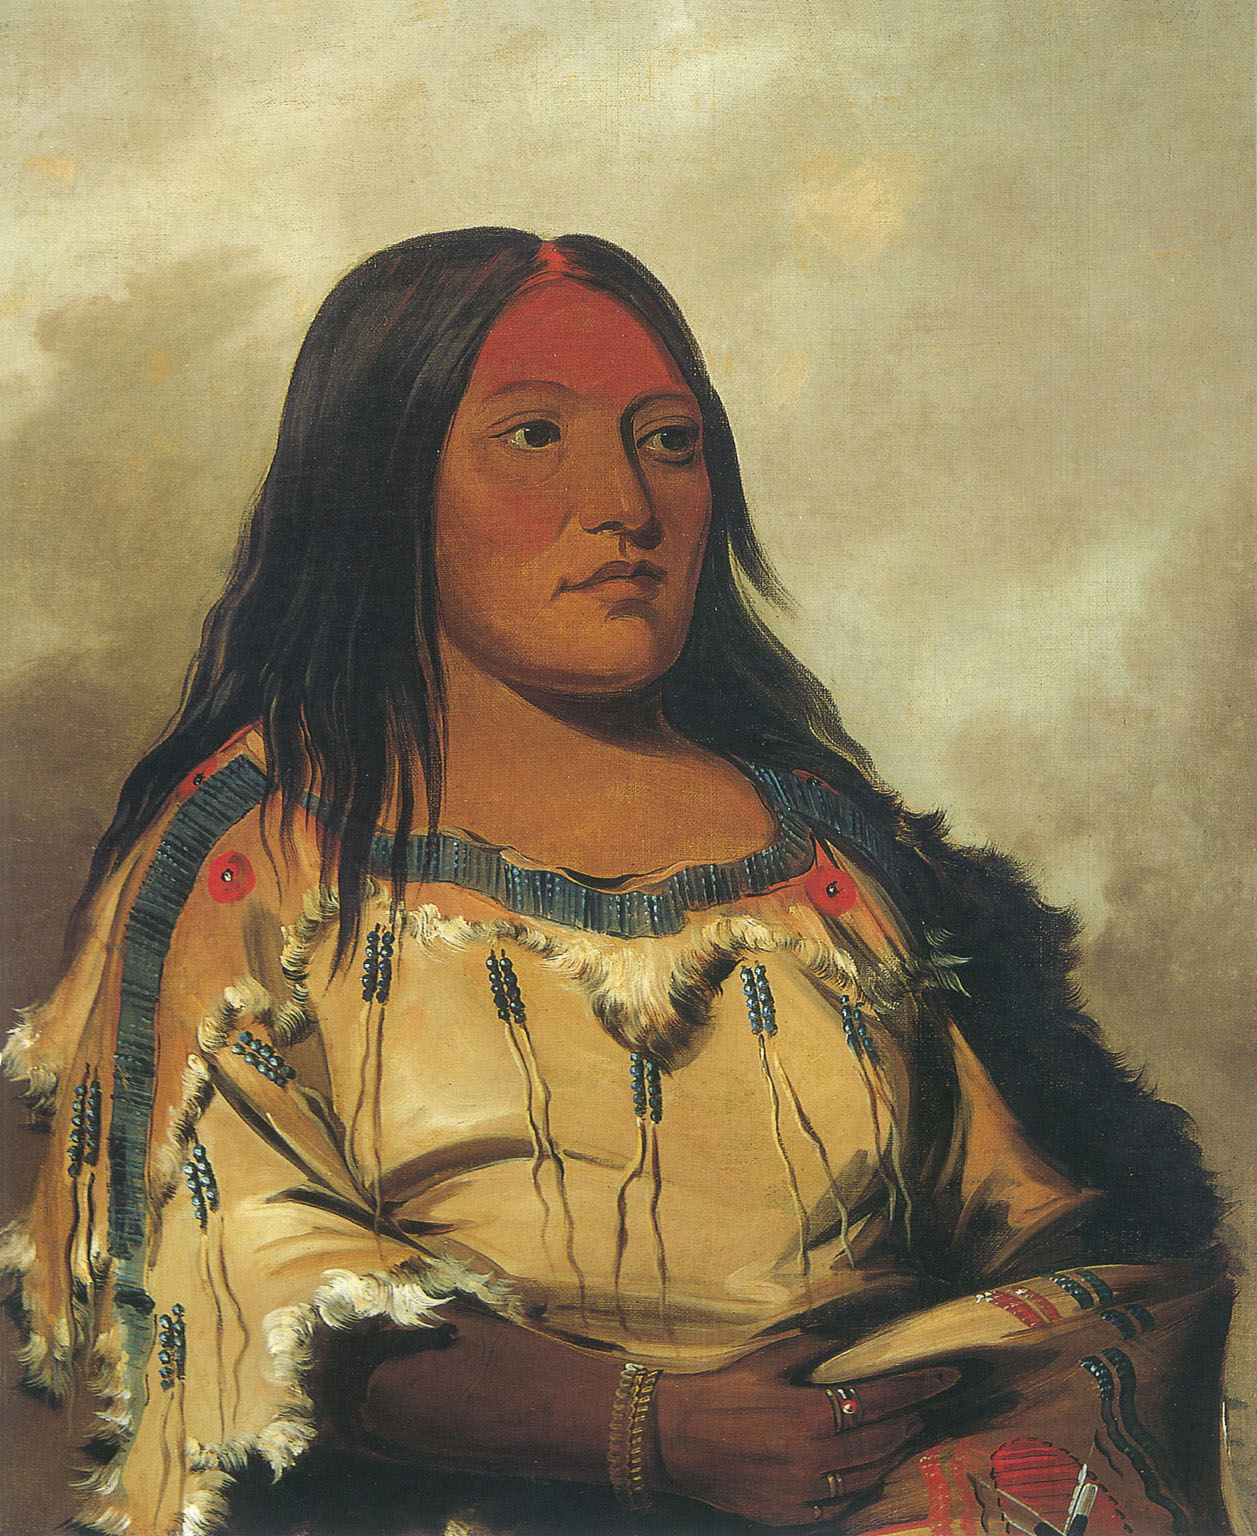 12 manifest destiny the american yawp american artist george catlin traveled west to paint native americans in 1832 he painted eeh